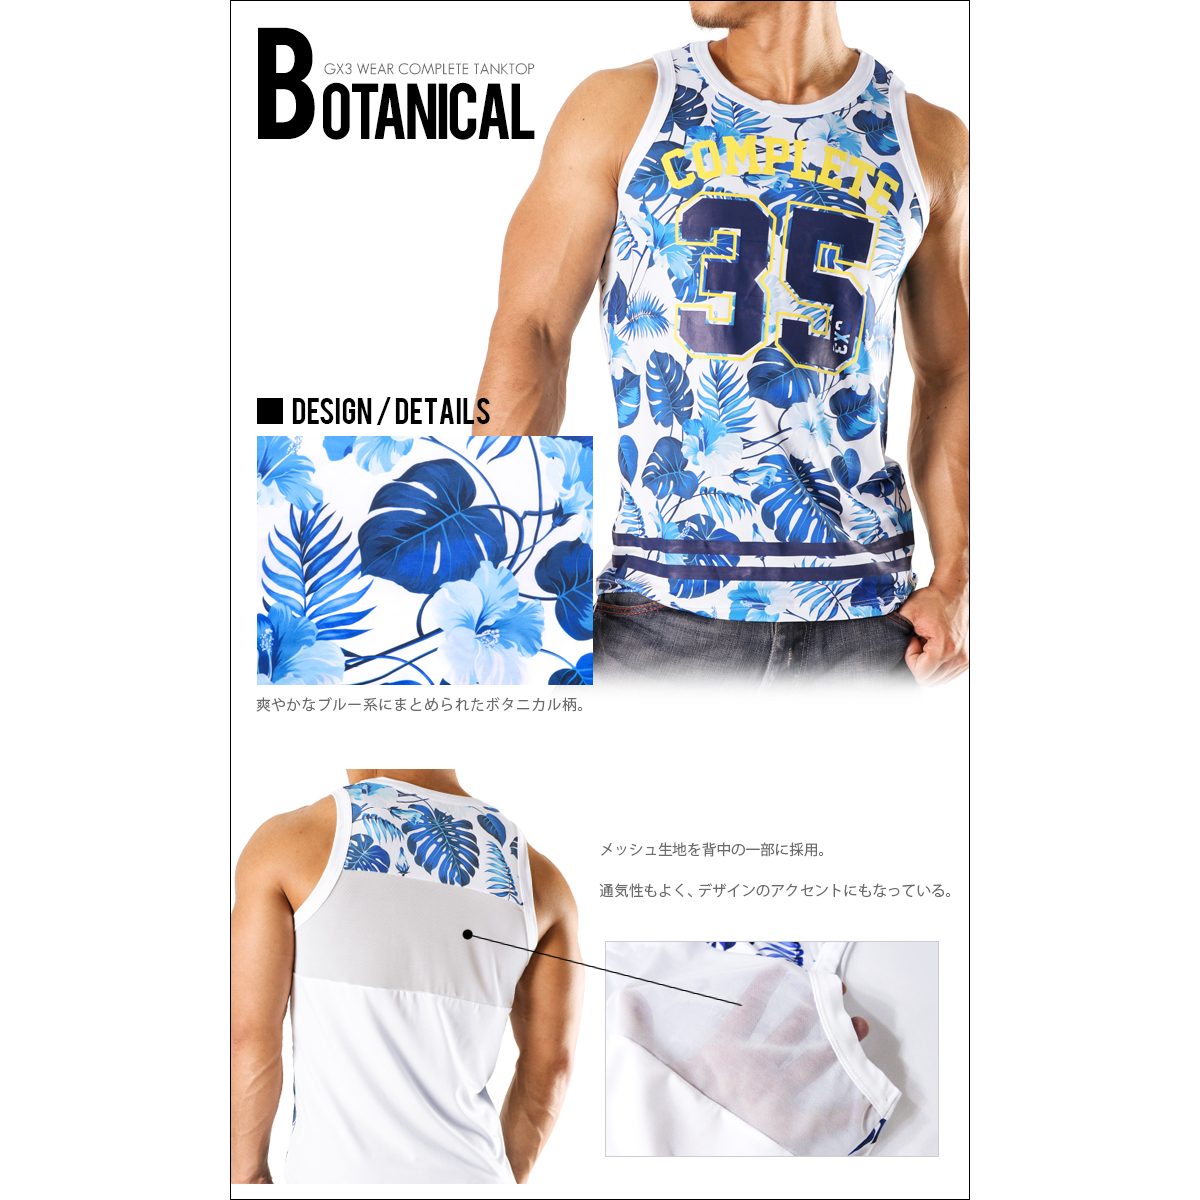 Tops LIMITED EDITION WEAR COMPLETE TANKTOP - BOTANICAL